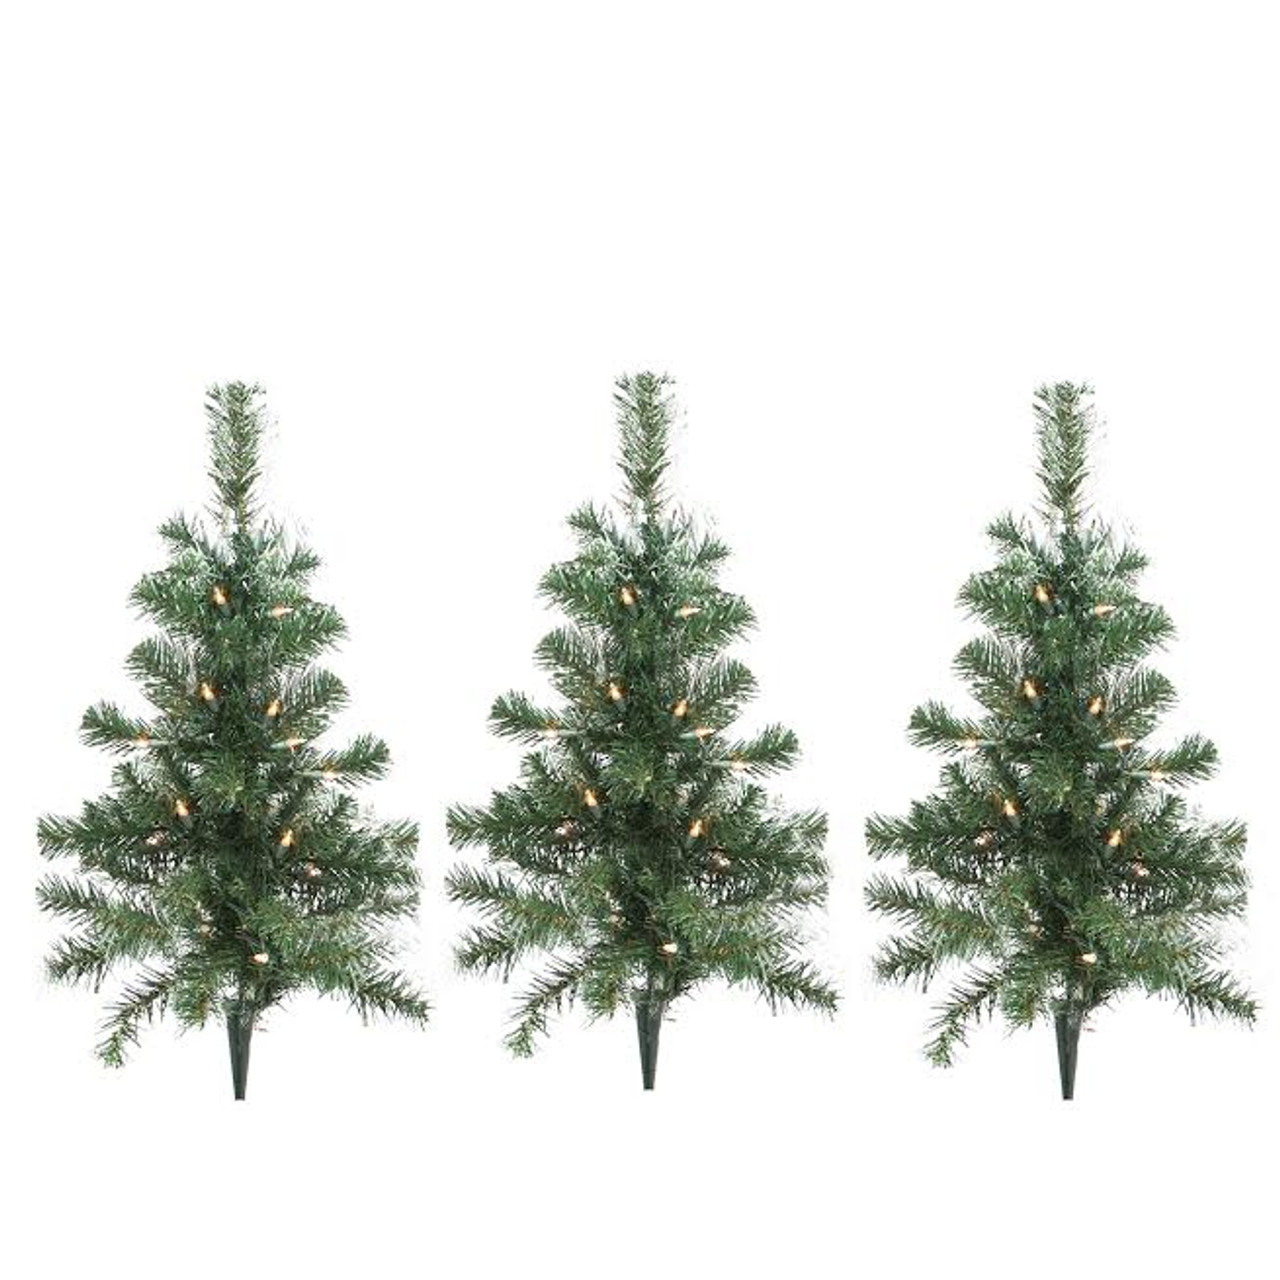 pack of 3 lighted christmas tree driveway or pathway markers outdoor christmas decorations 31481164 - White Outdoor Christmas Tree